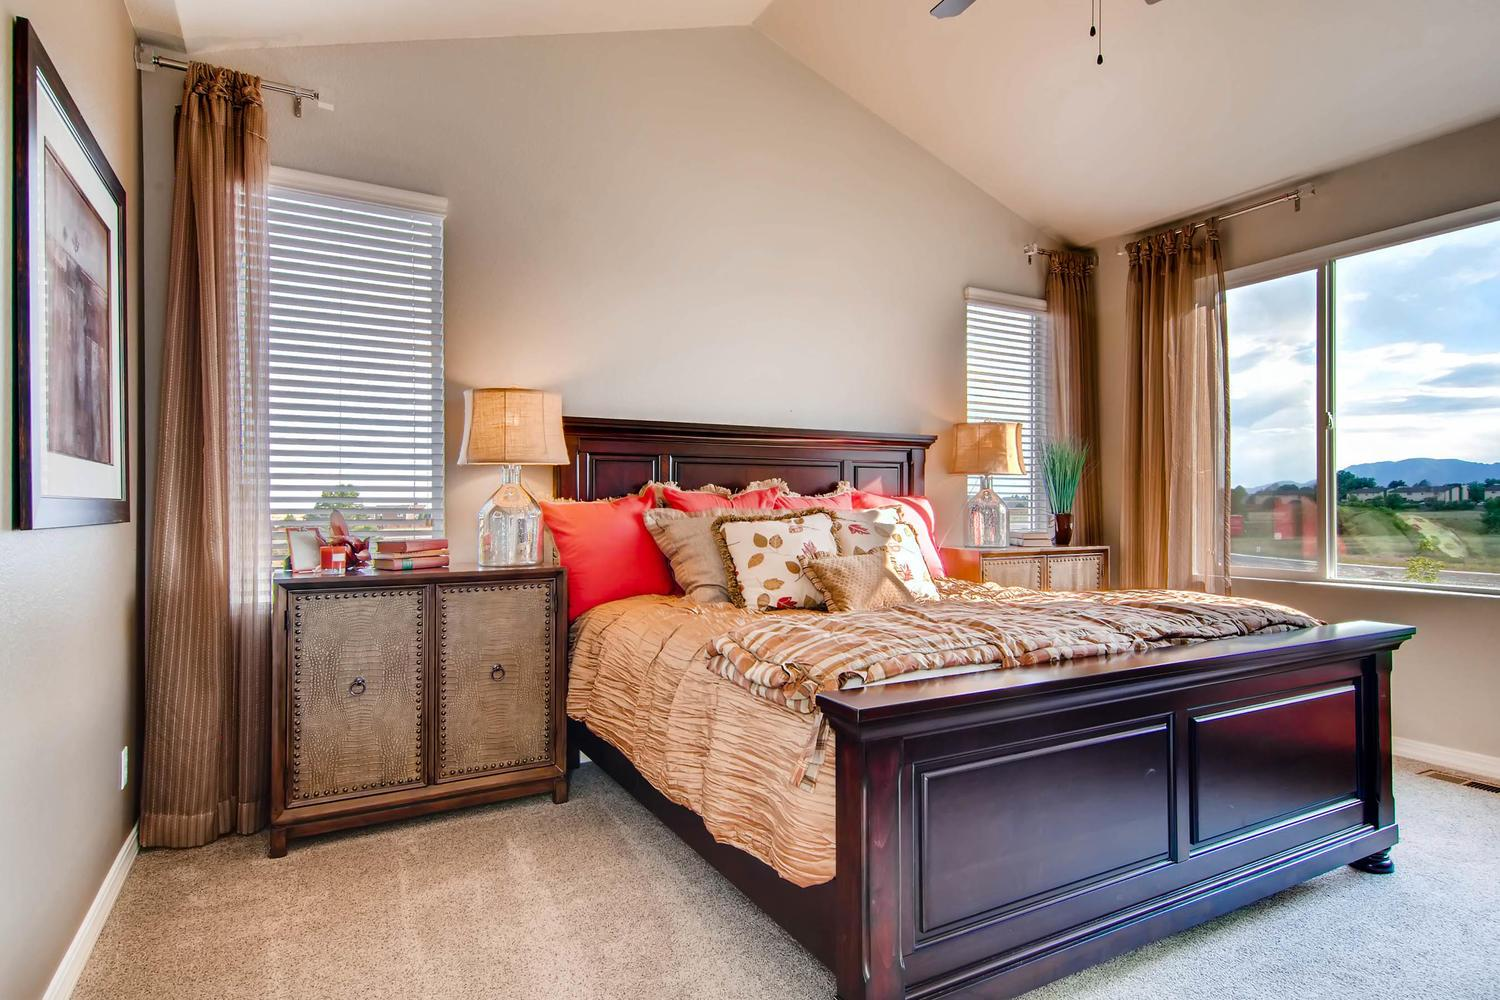 Bedroom featured in the Hannah By Classic Homes in Colorado Springs, CO